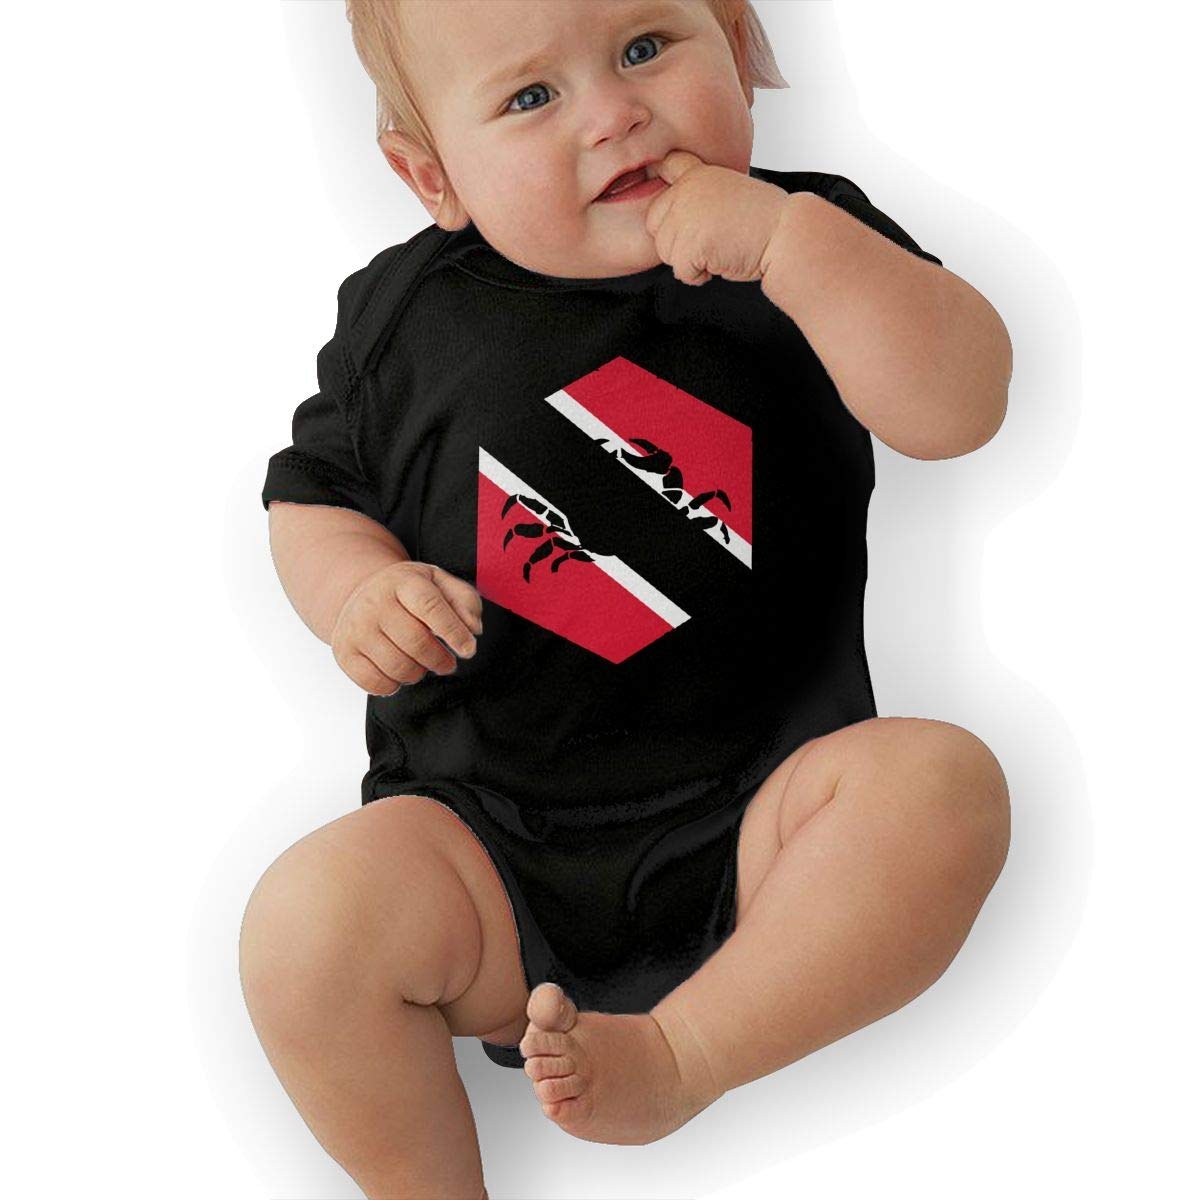 Suit 6-24 Months Baby Boys Cancer Trinidad Short Sleeve Climbing Clothes Bodysuits